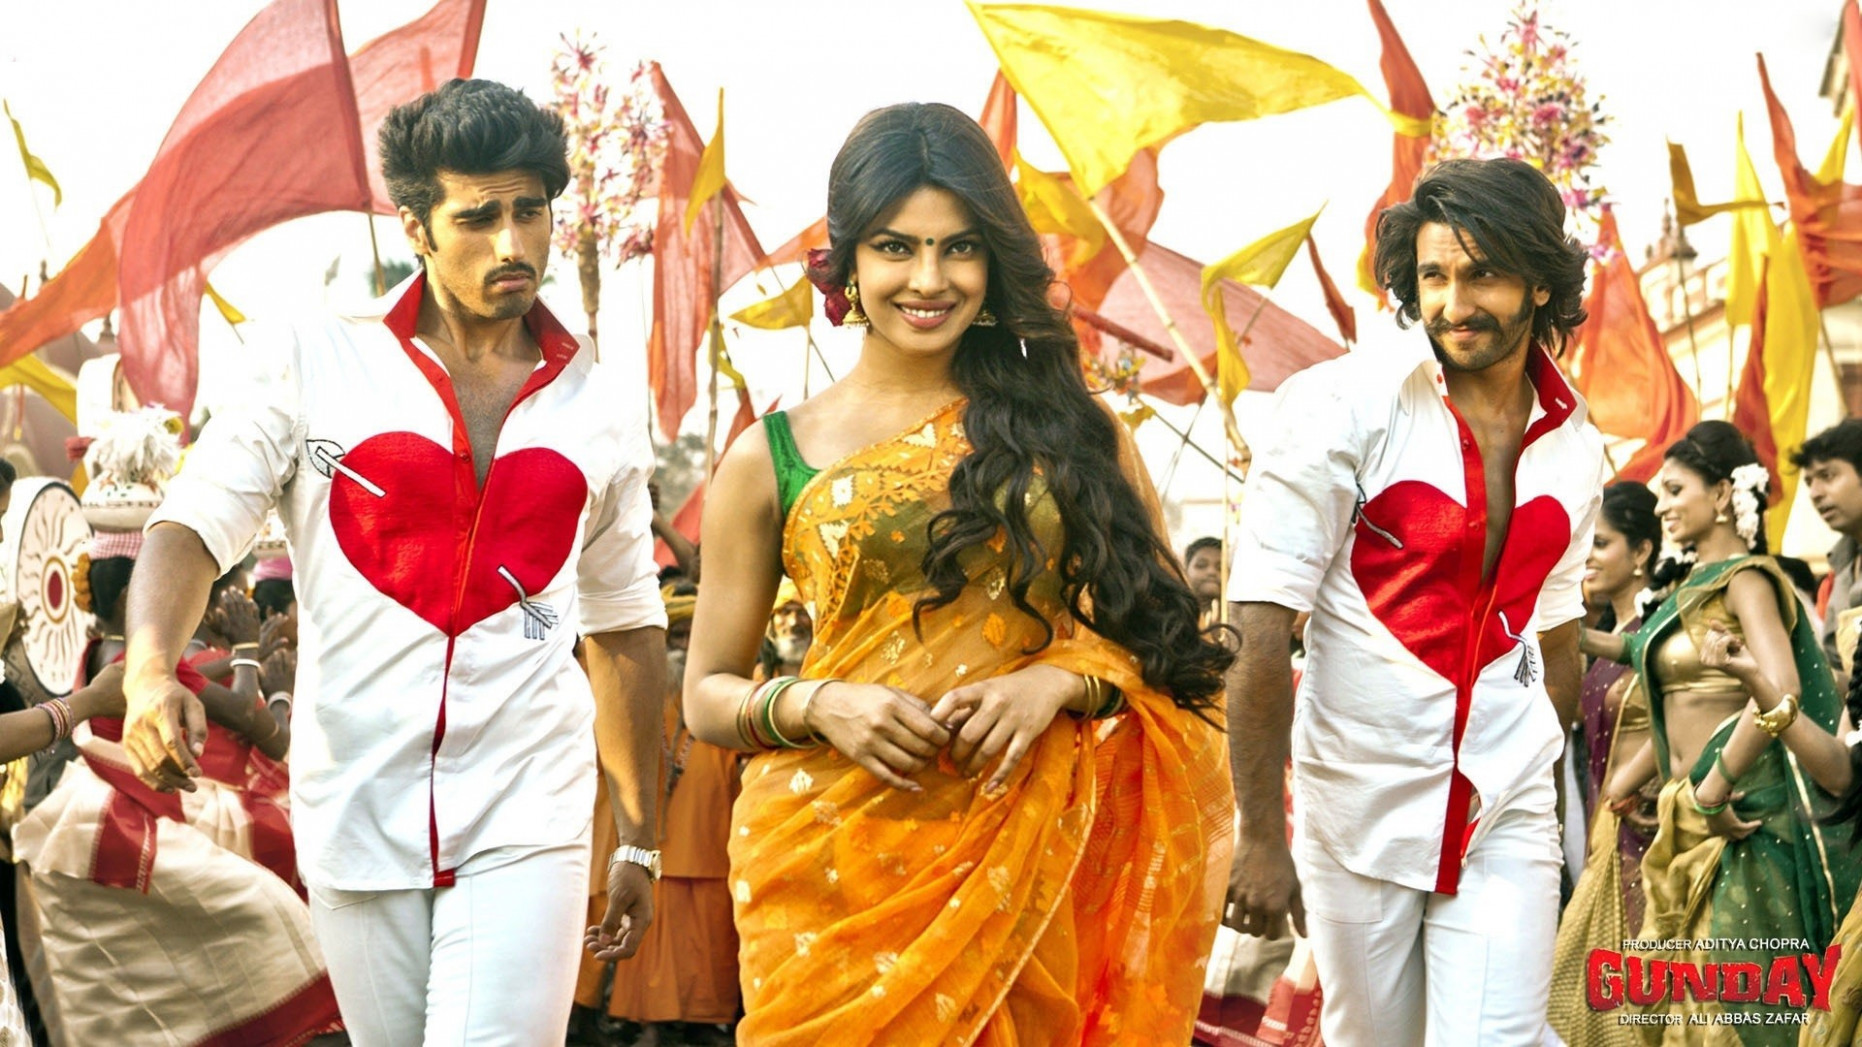 Download New Bollywood Movie Wallpapers HD Gallery